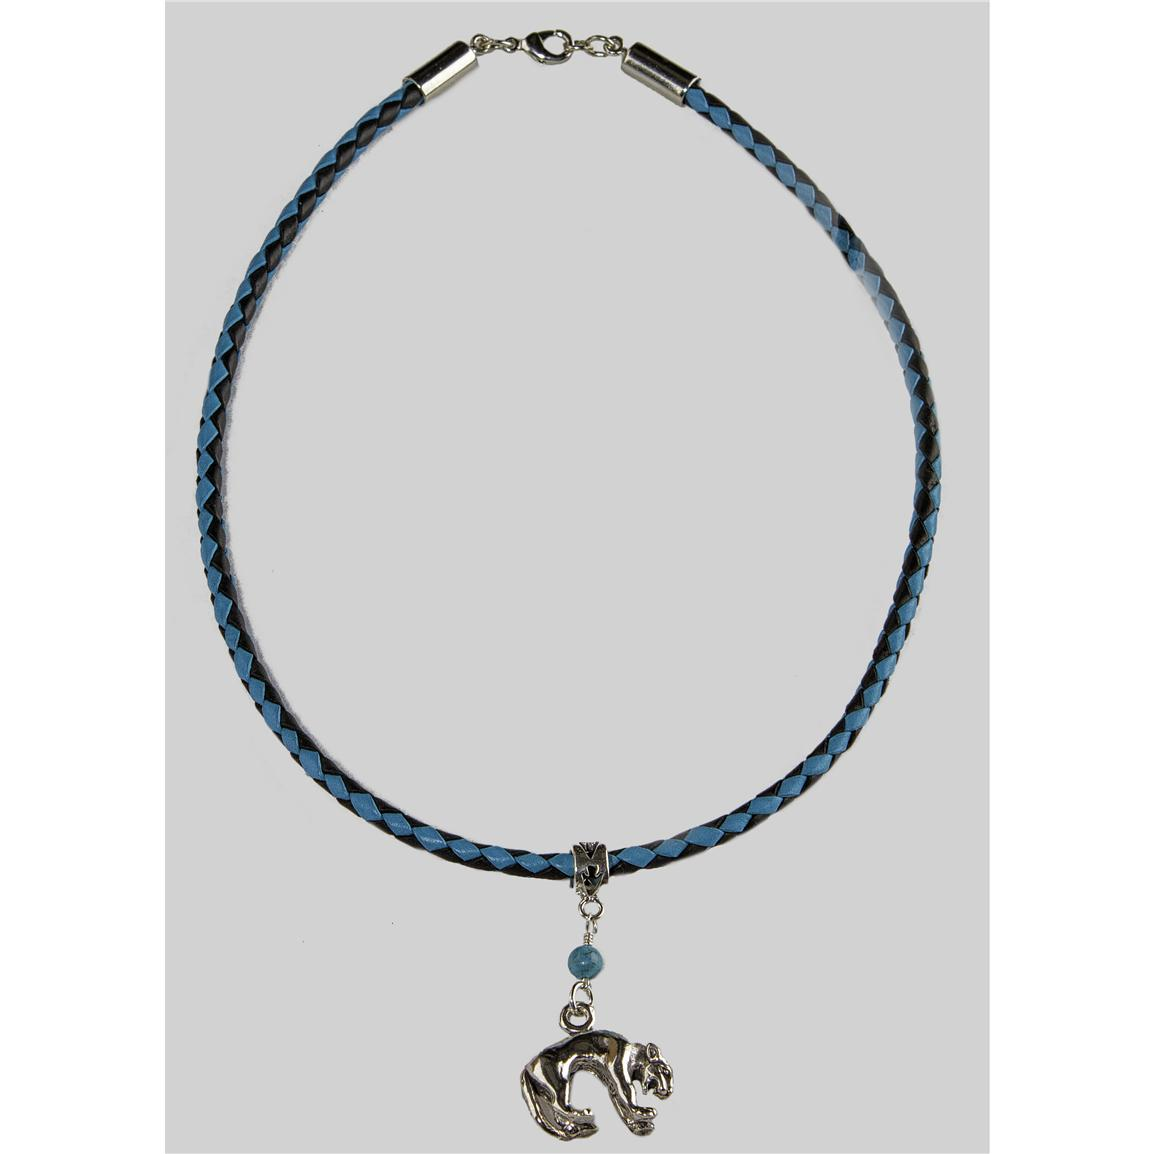 Laura Ingalls Designs™ Mountain Lion on Turquoise and Black Braided Necklace